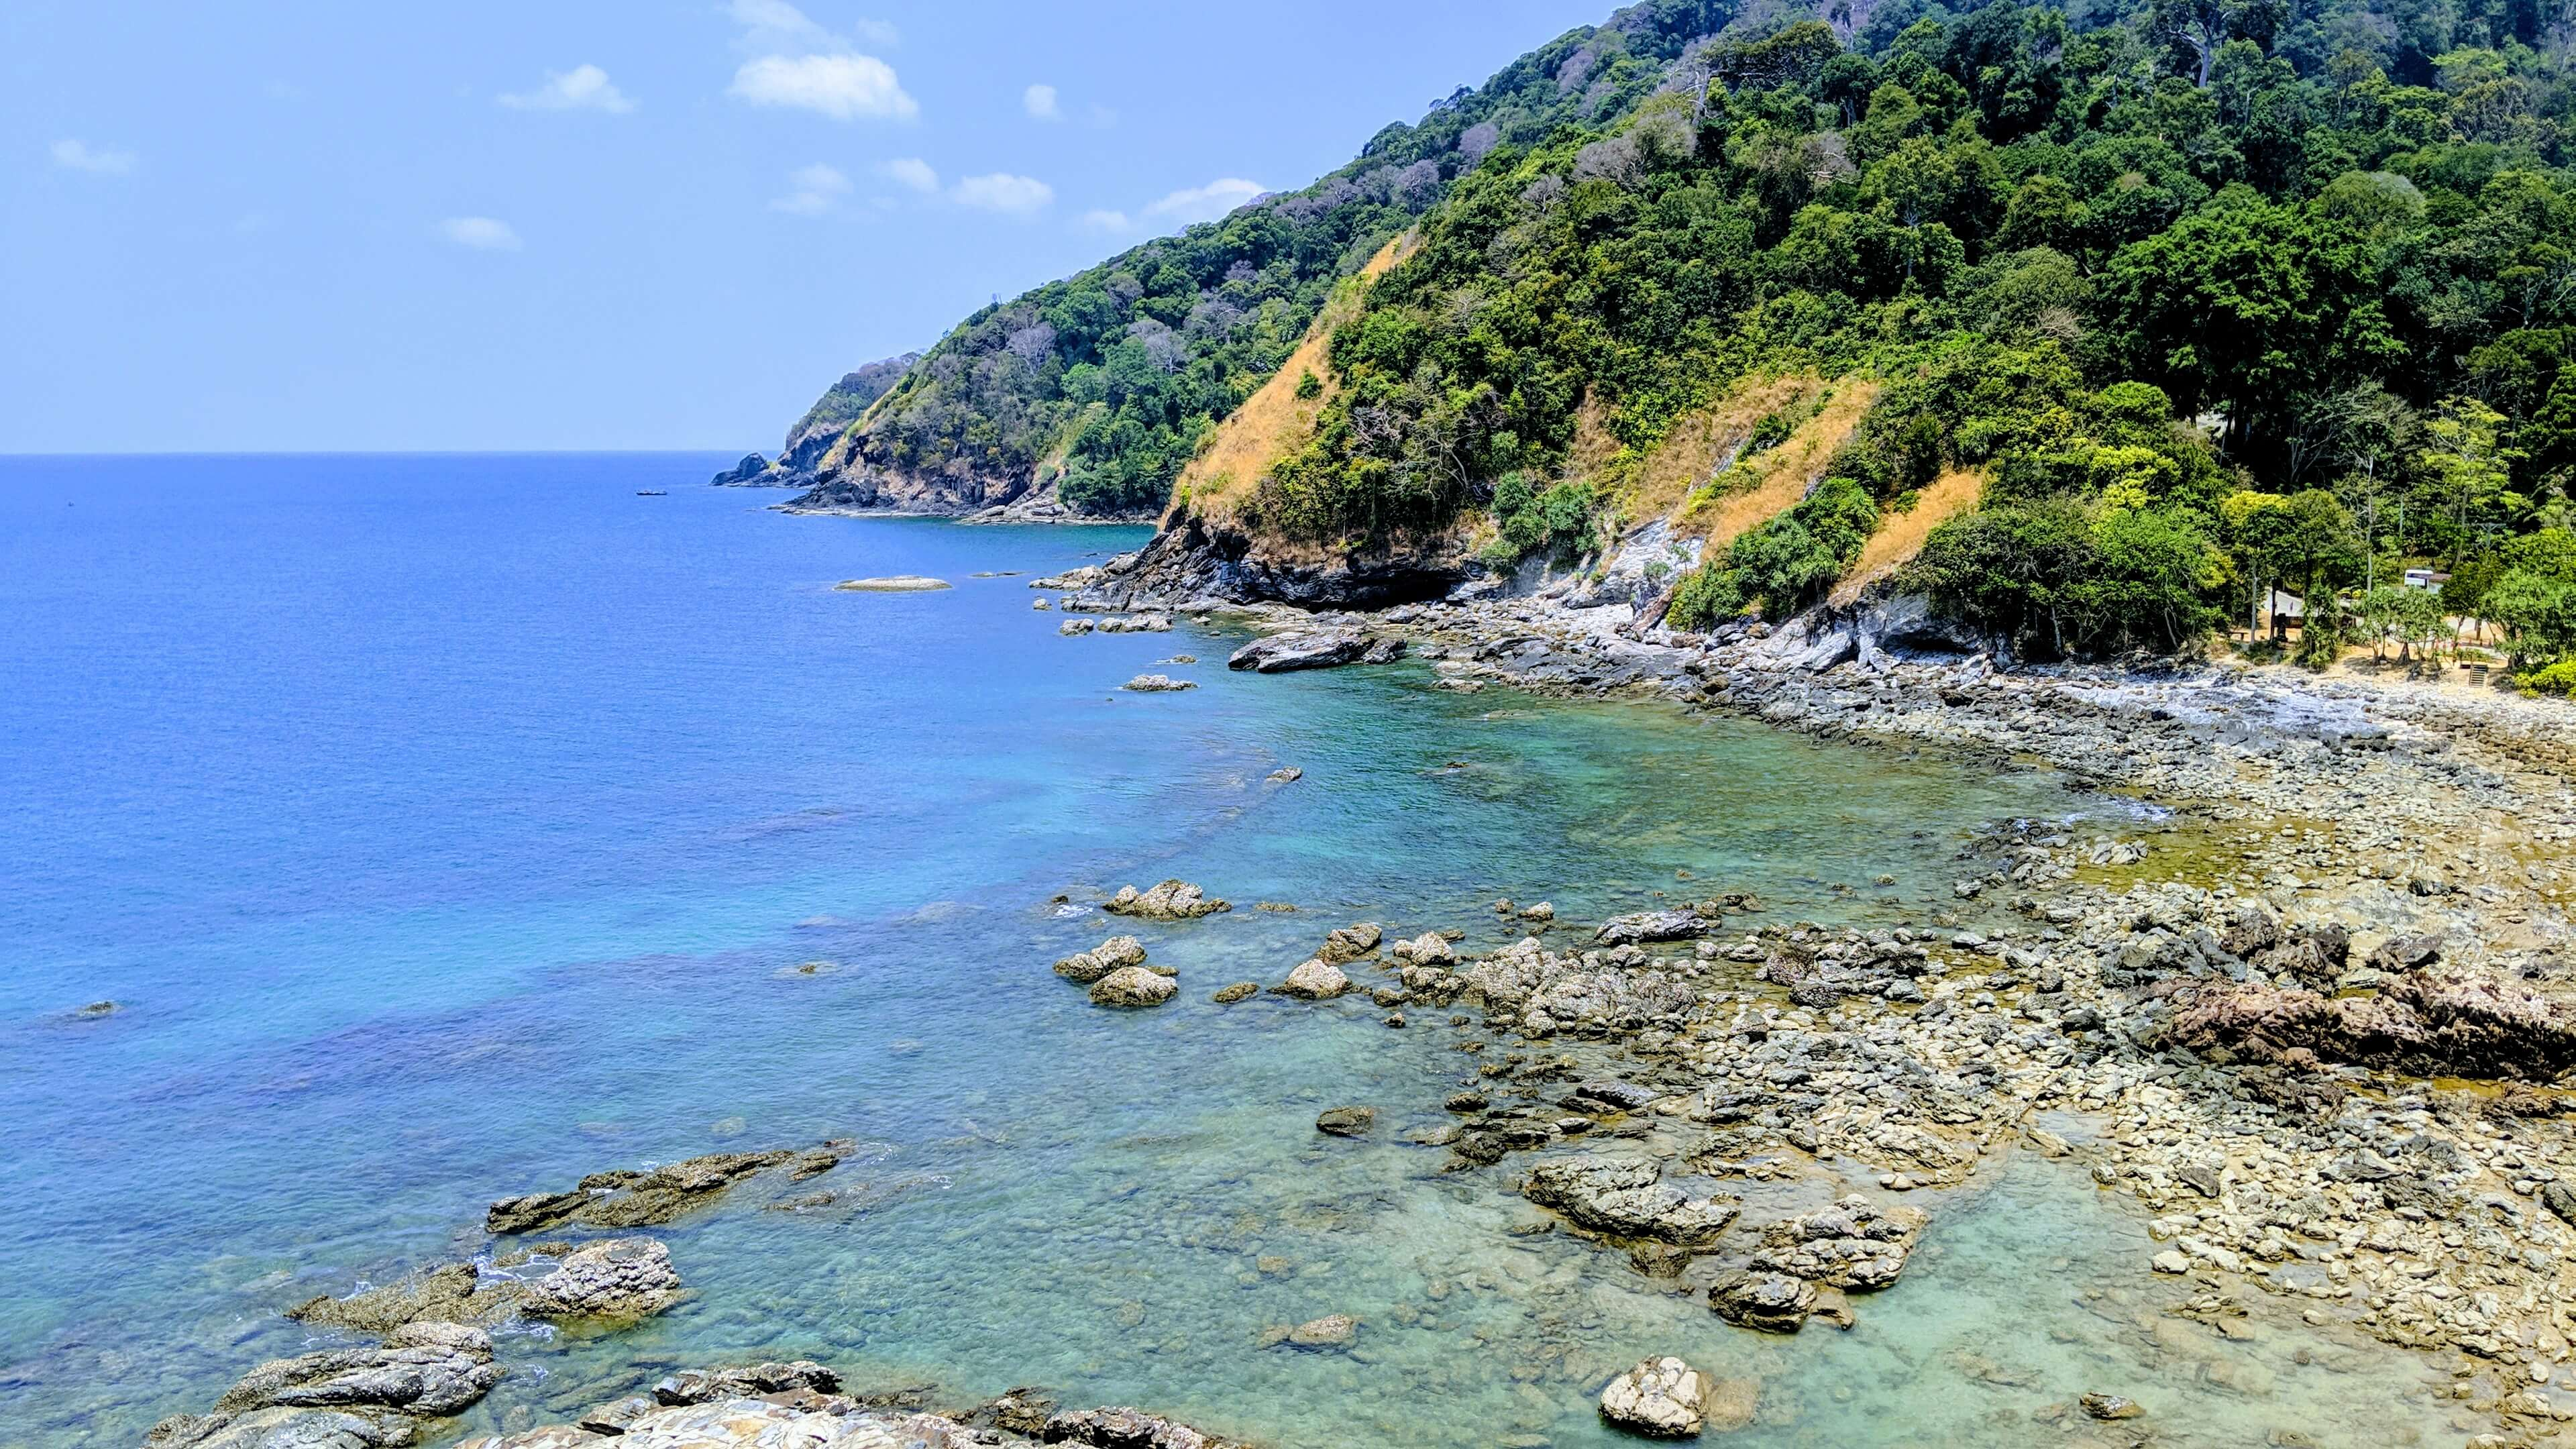 Mu Ko Lanta National Park - a cove of light blue and turquoise water.